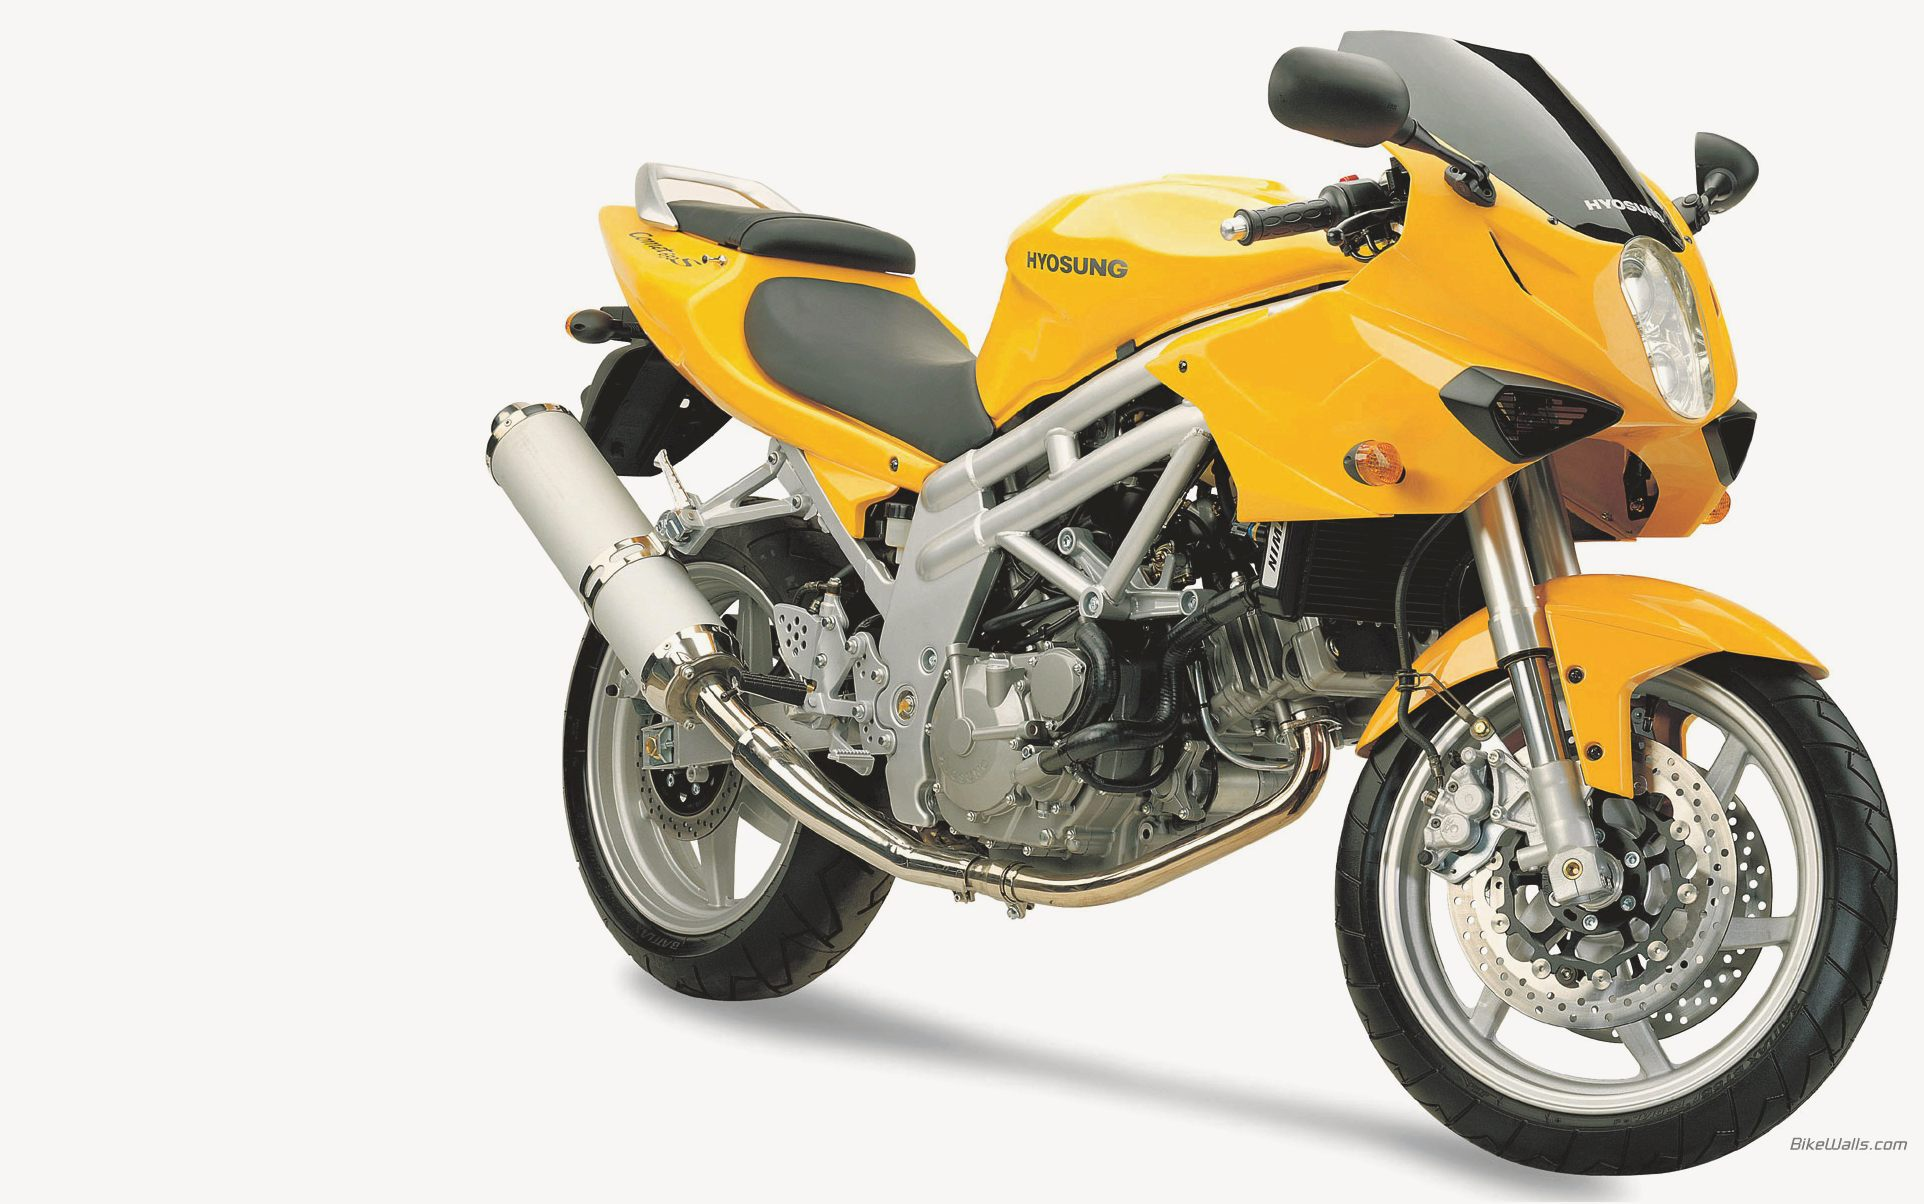 hight resolution of 2005 hyosung gt 650 wiring diagram wiring library 2005 hyosung gt650r wiring diagram 2005 hyosung gt